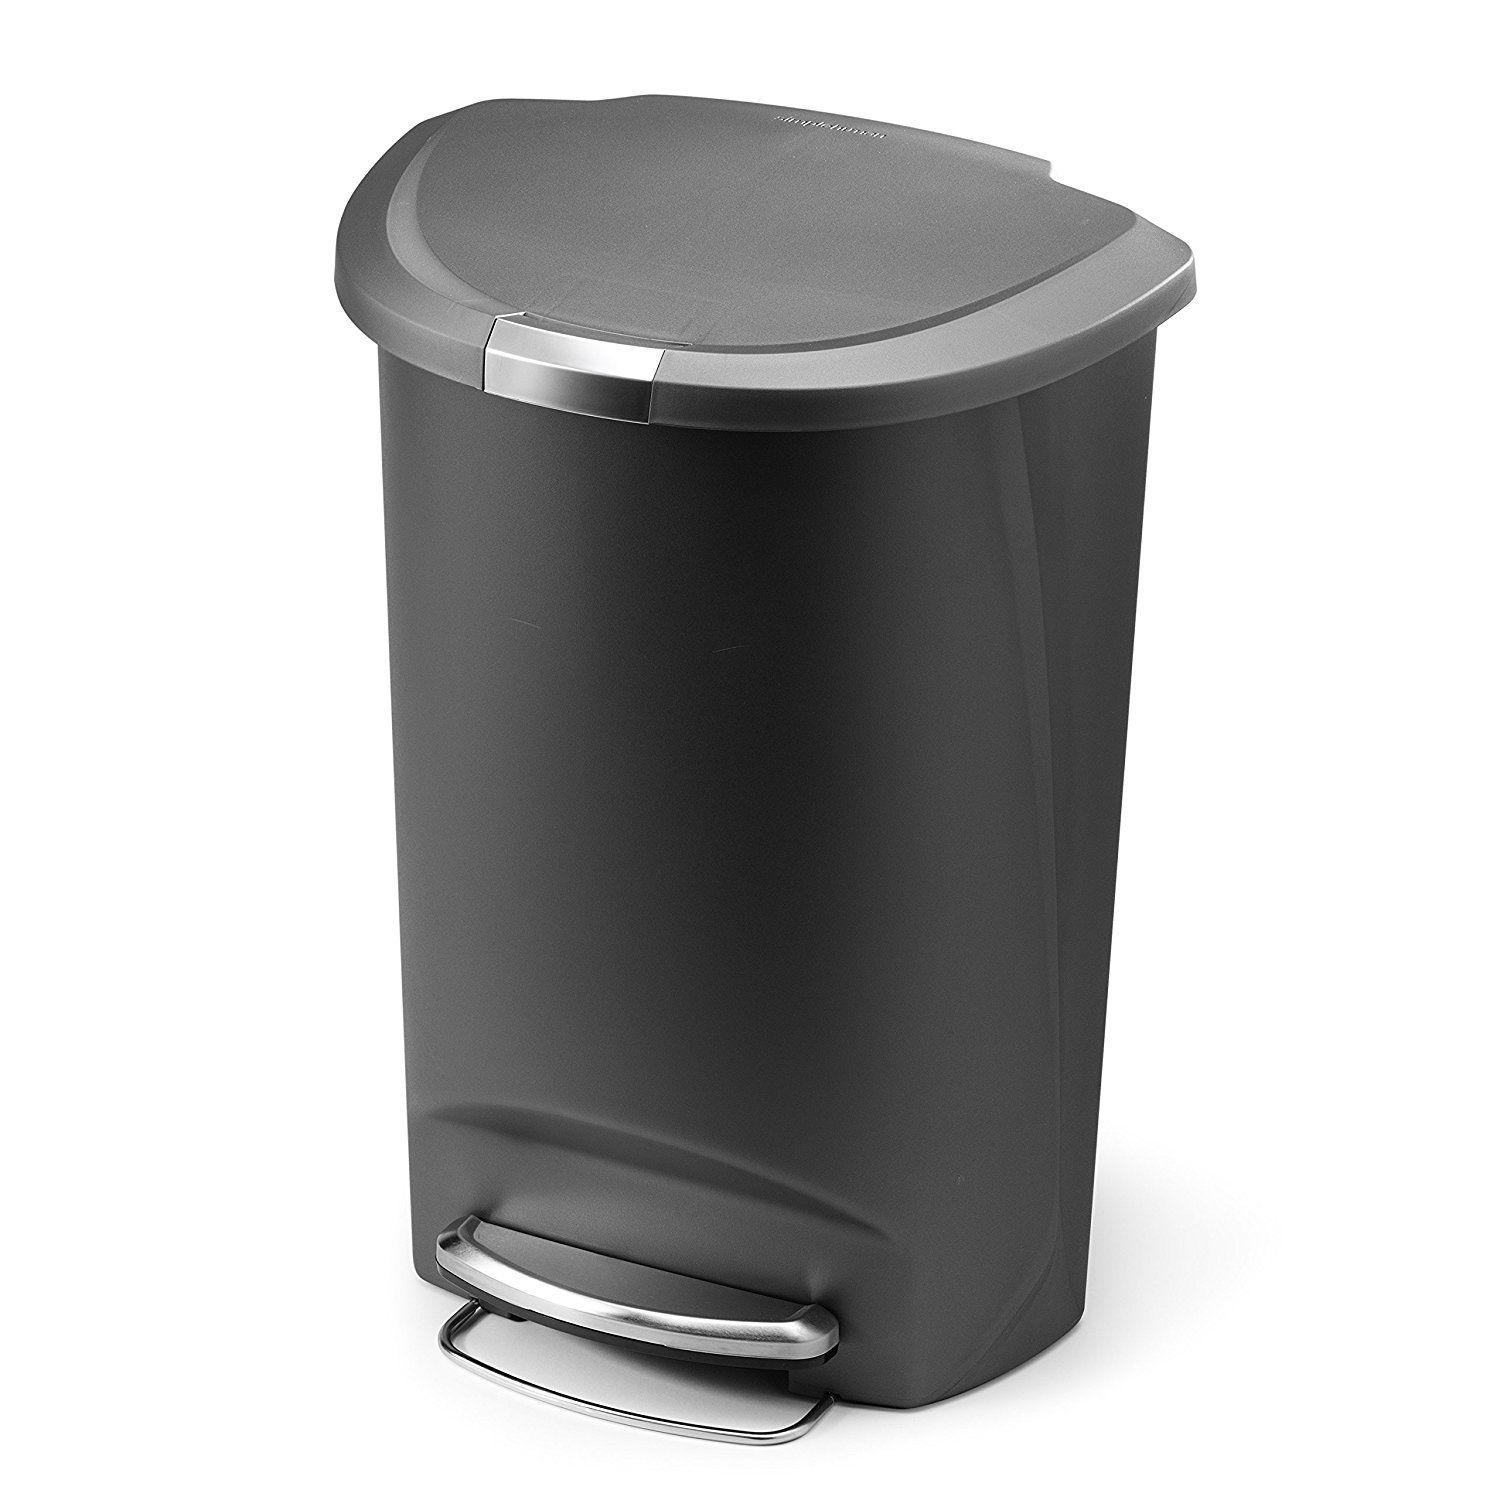 simplehuman semi round step trash can best offer reviews. Black Bedroom Furniture Sets. Home Design Ideas